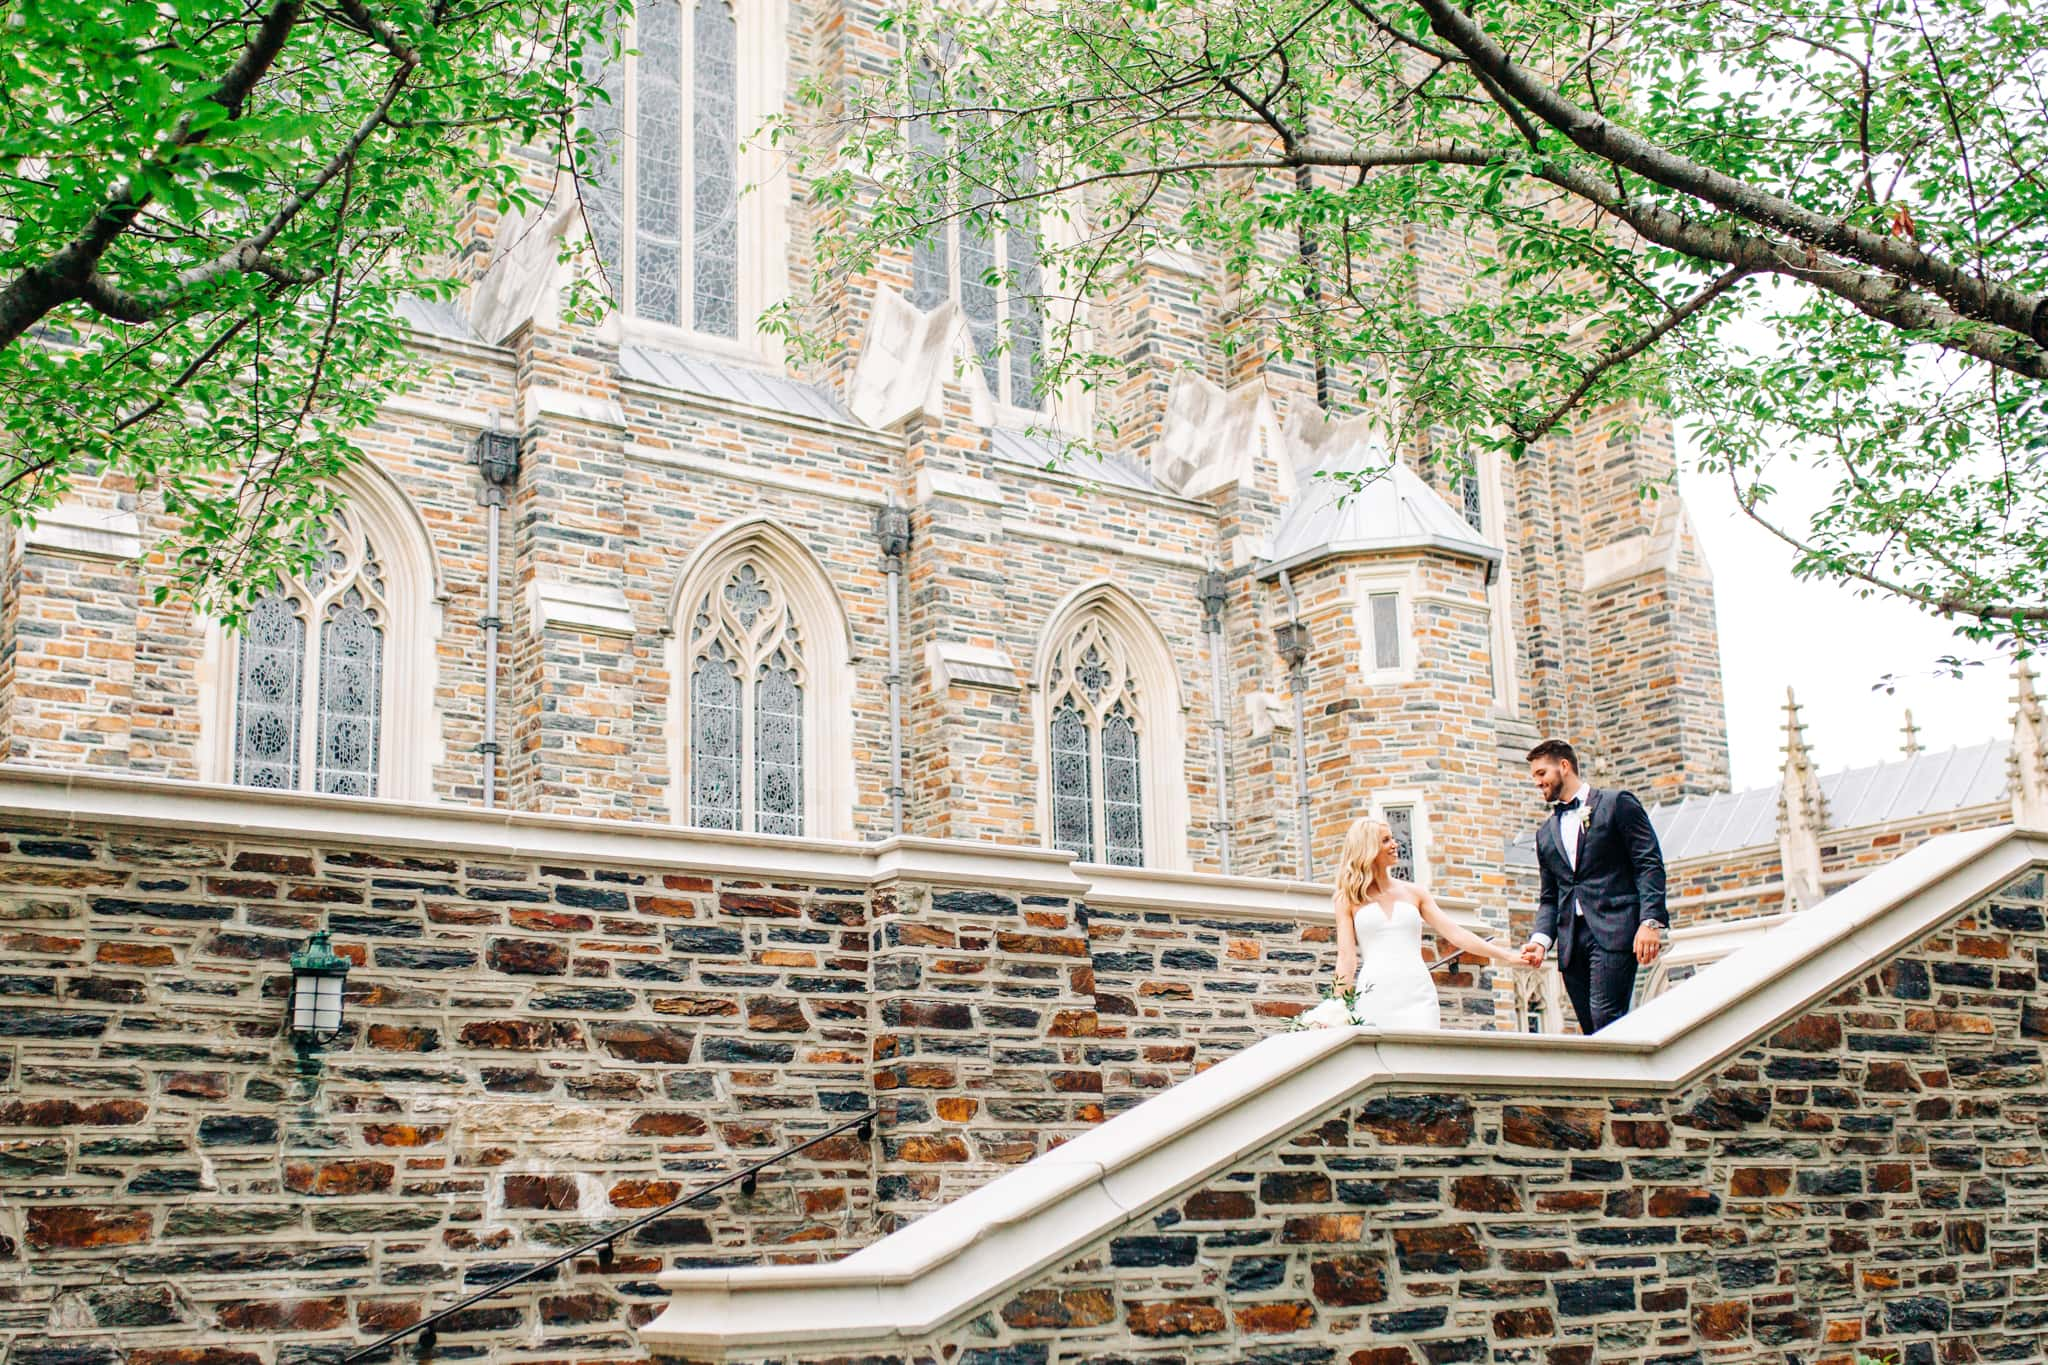 bride leading groom down the stone stairs at duke university after just getting married in the chapel